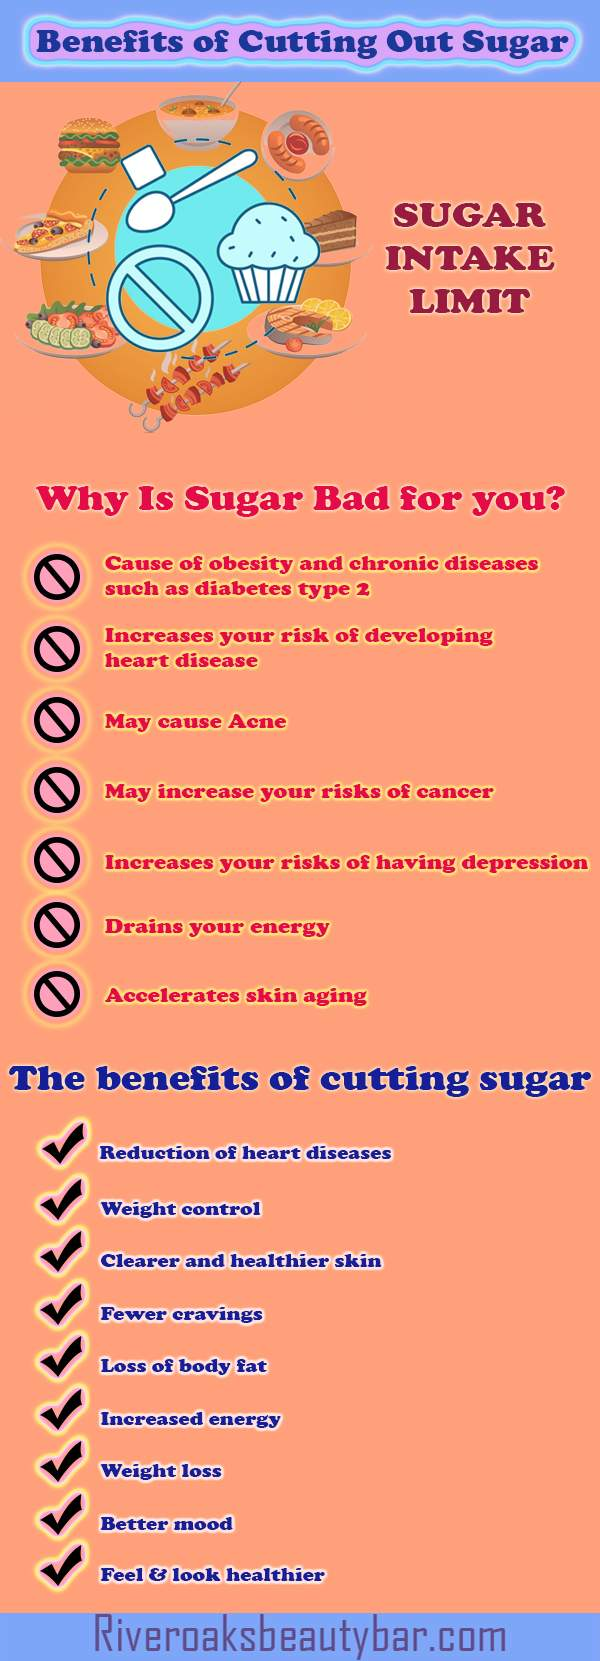 Benefits of Cutting Out Sugar Infographic